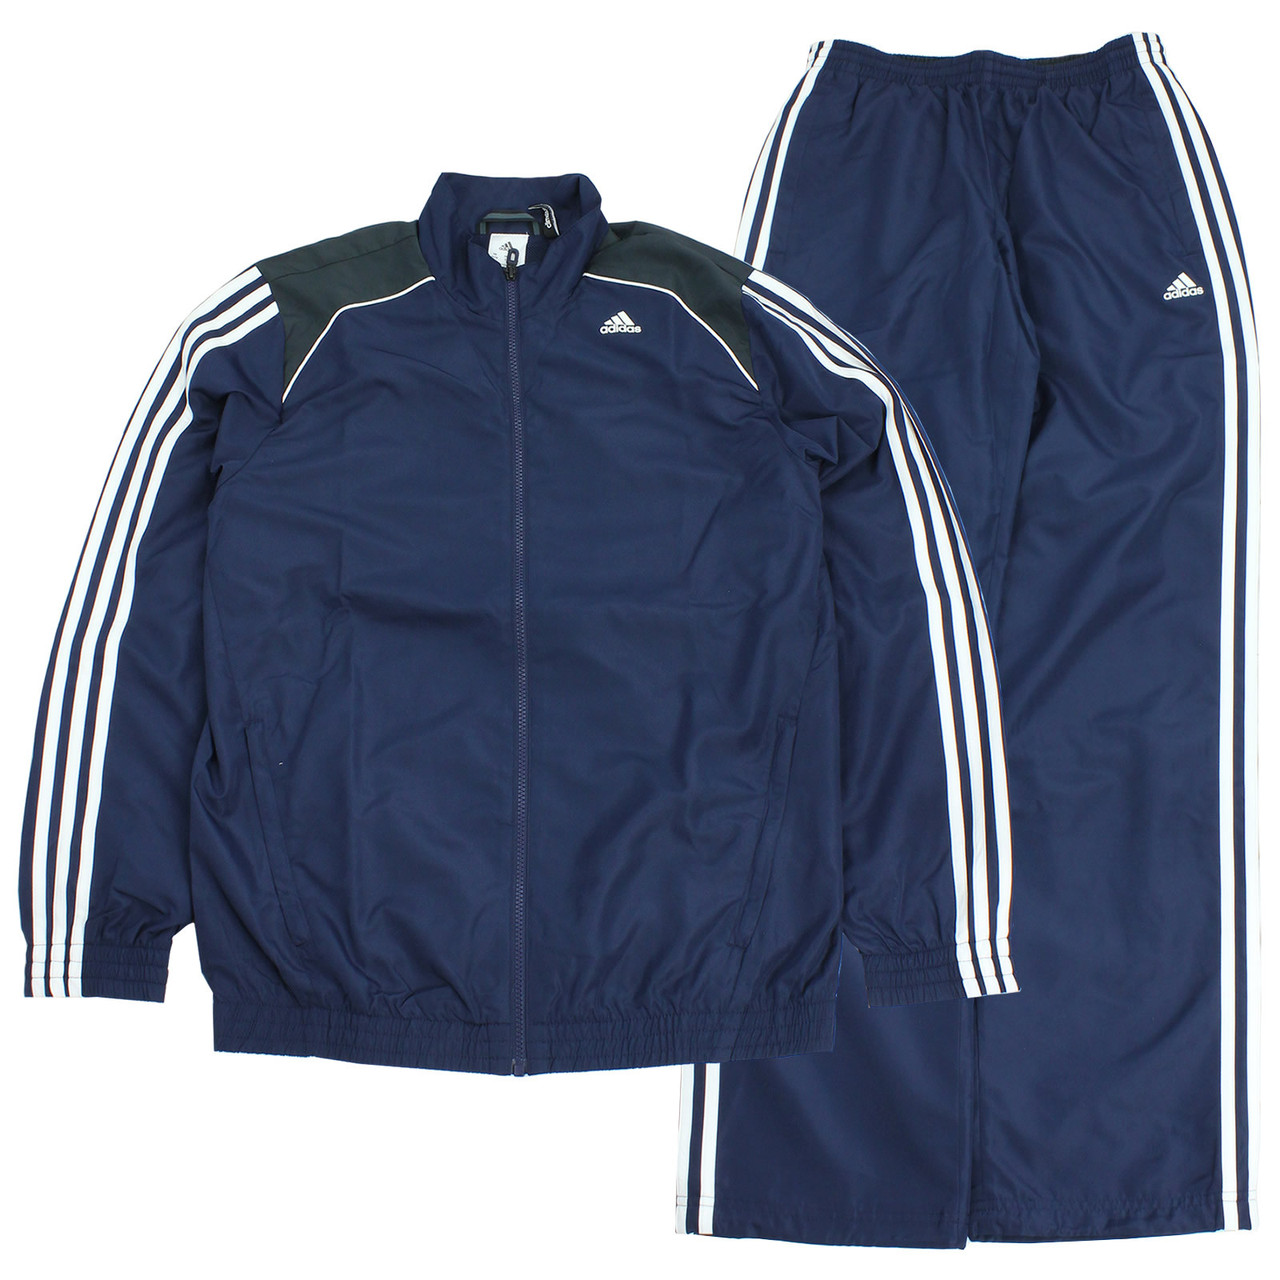 Костюм мужской adidas Essentials Men's 3S Polyester Tracksuit M32649 адидас